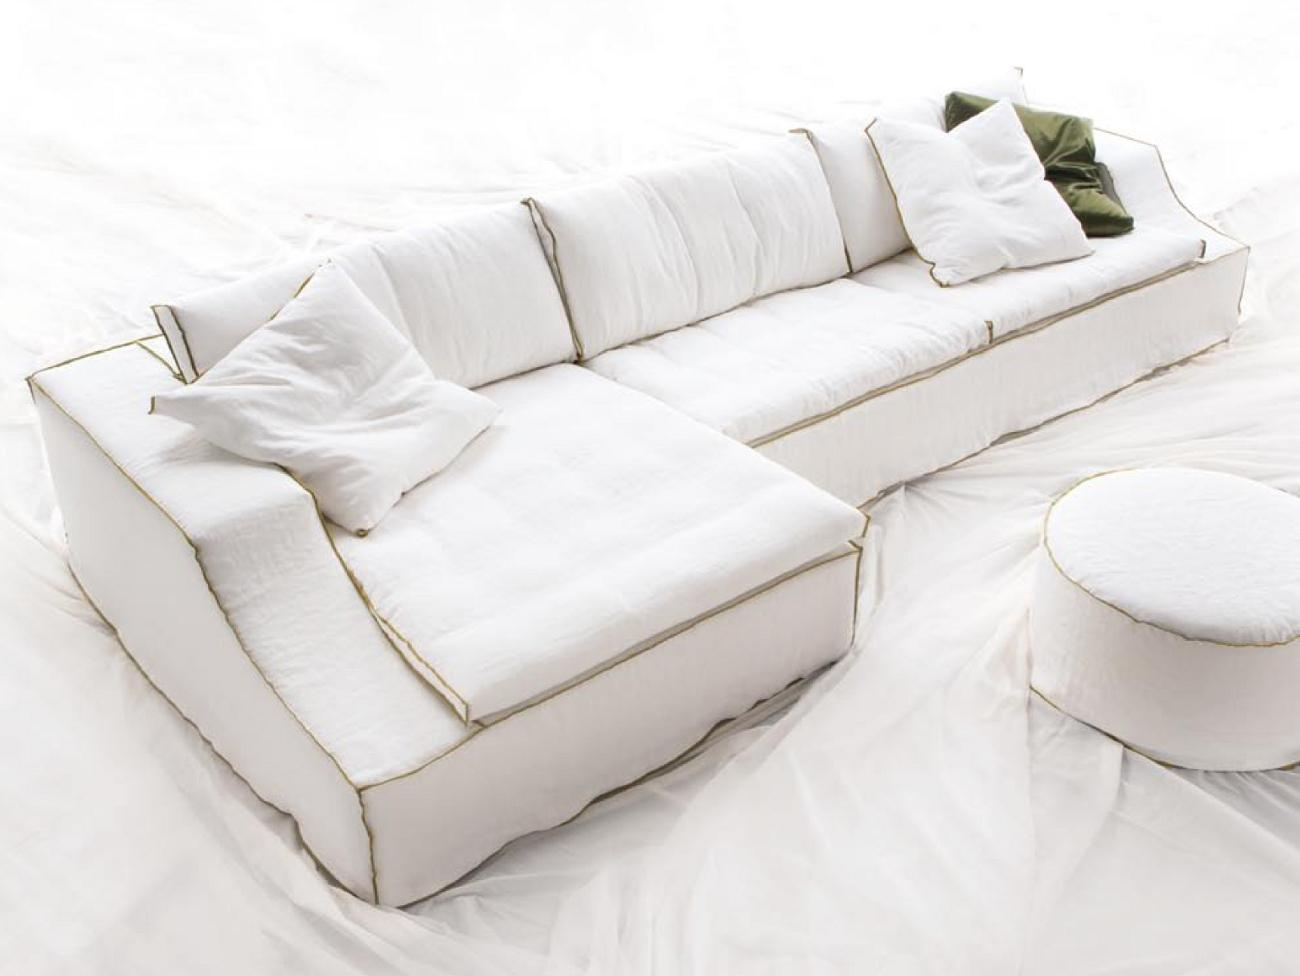 Furniture Home: The Most Popular Shabby Chic Sectional Sofa 60 With Regard To Shabby Chic Sectional Sofas (Image 7 of 20)